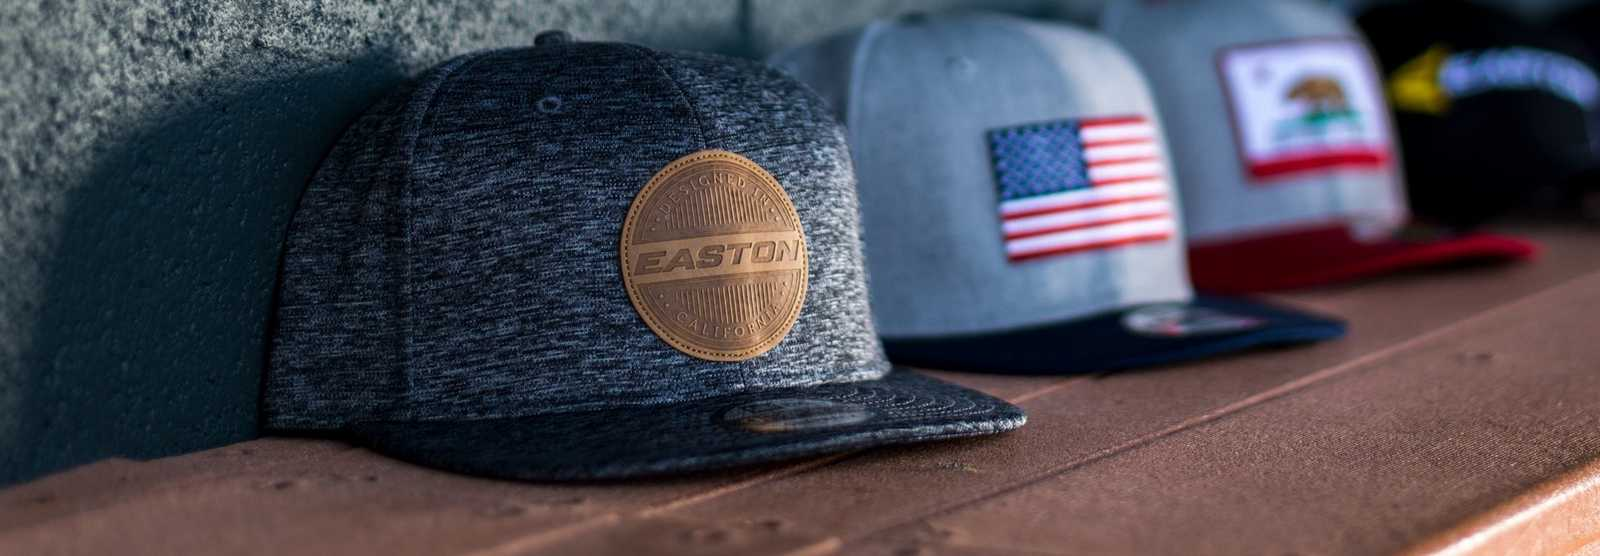 1c417f28ef5643 Baseball Hats & Caps | Shop a Variety of Styles of Baseball Caps ...